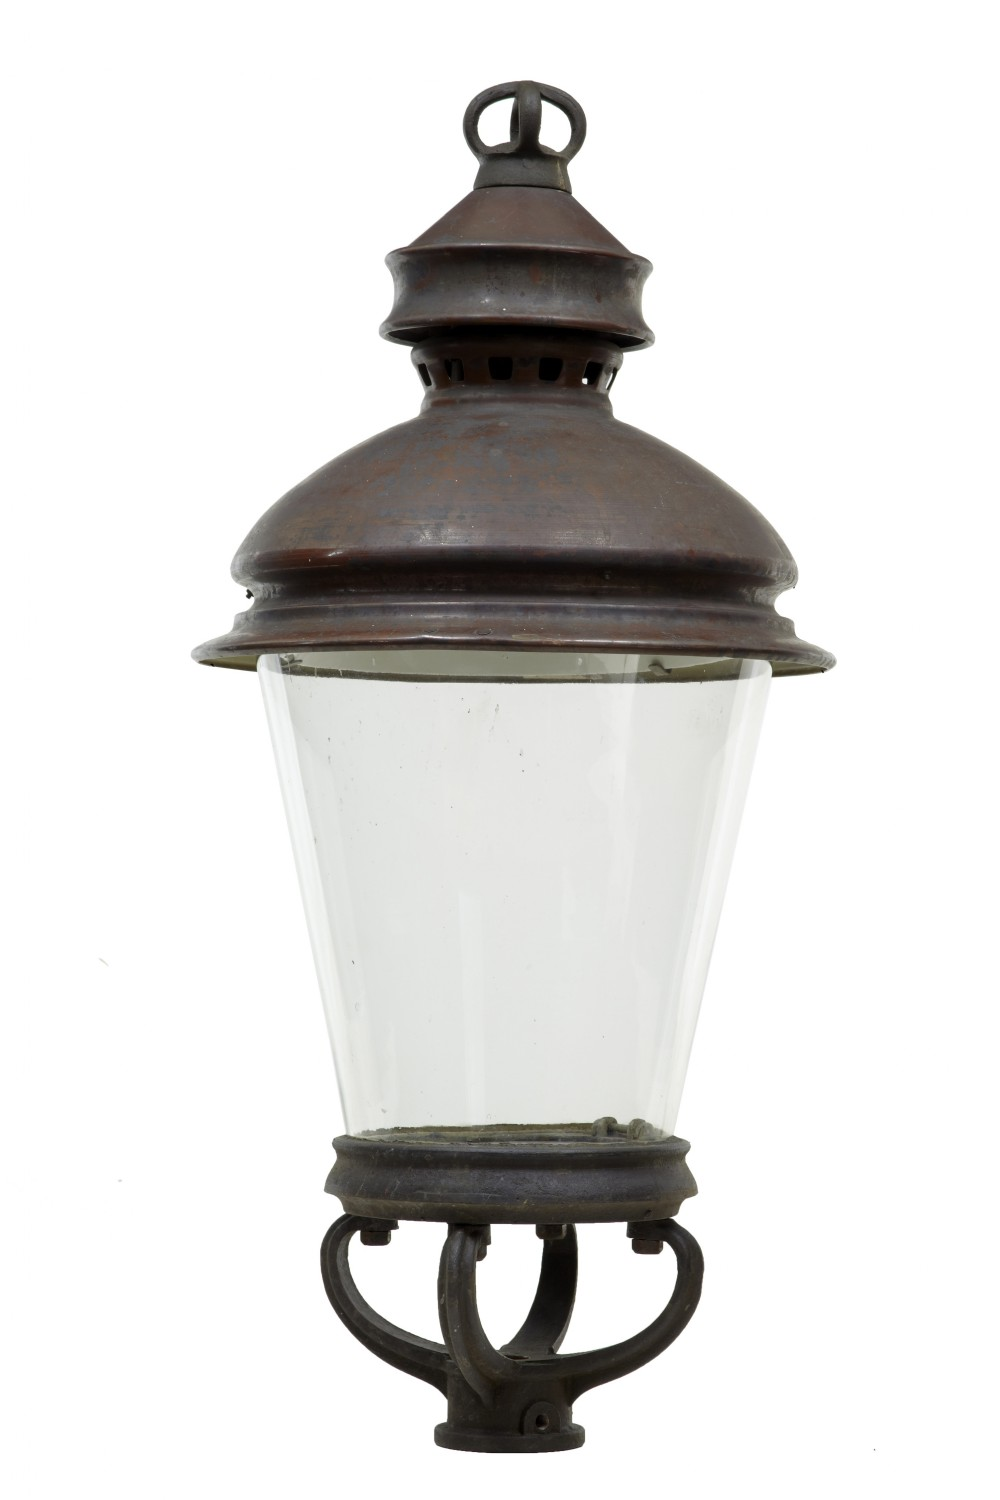 19th century large copper lantern